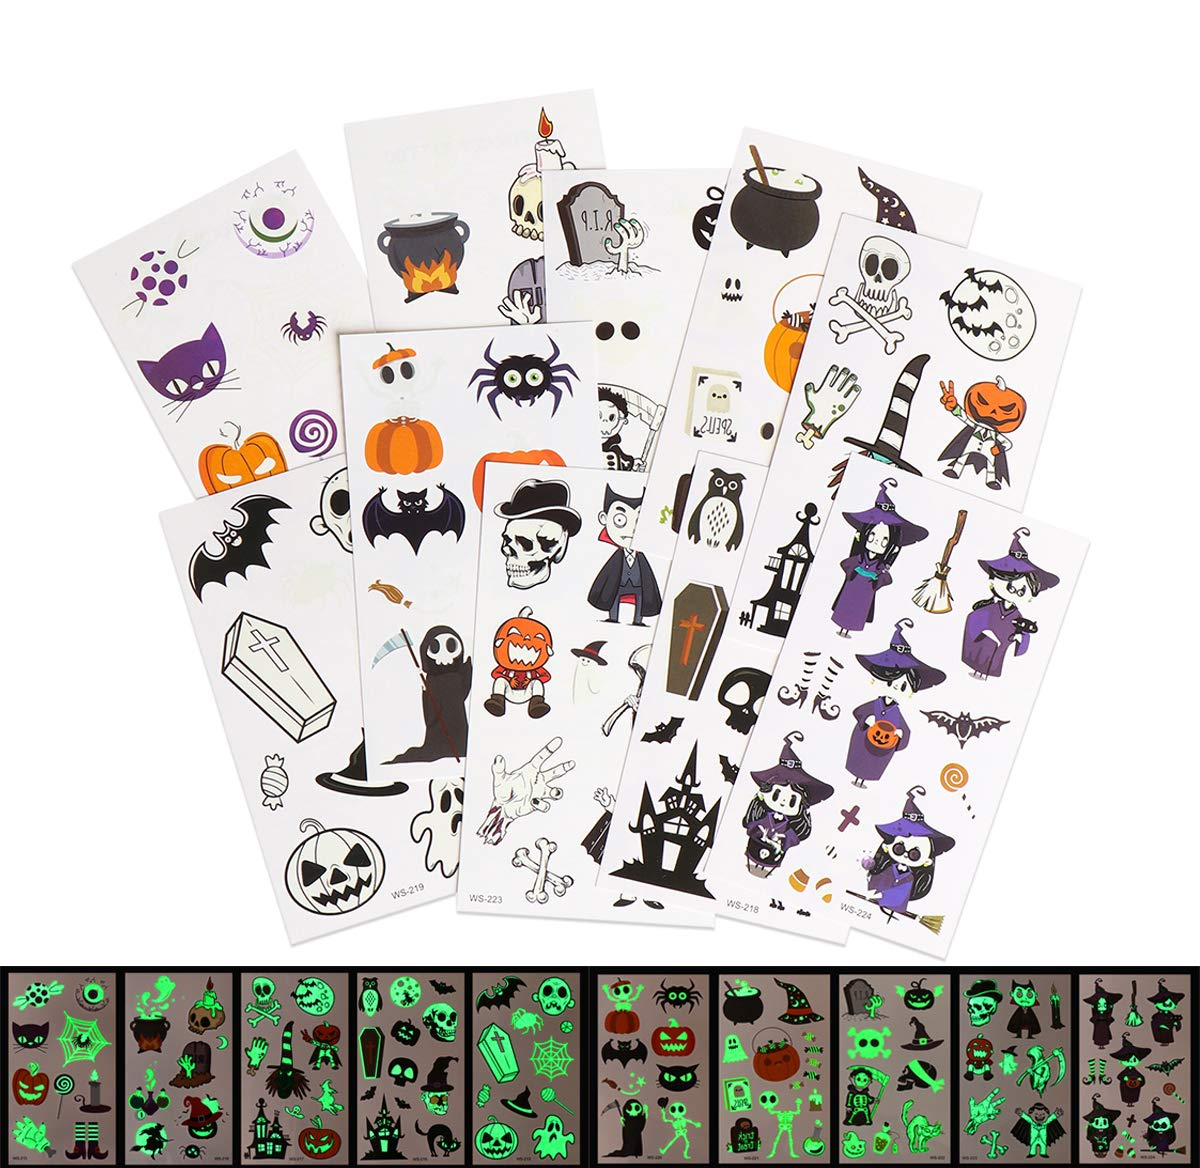 10Pcs Halloween Christmas Luminous Tattoo Stickers for Kids, Ghost Spider Web Pumpkin Simulation Face In Dark Temporary Tattoo Party Stickers for Halloween Christmas Gifts (Halloween)